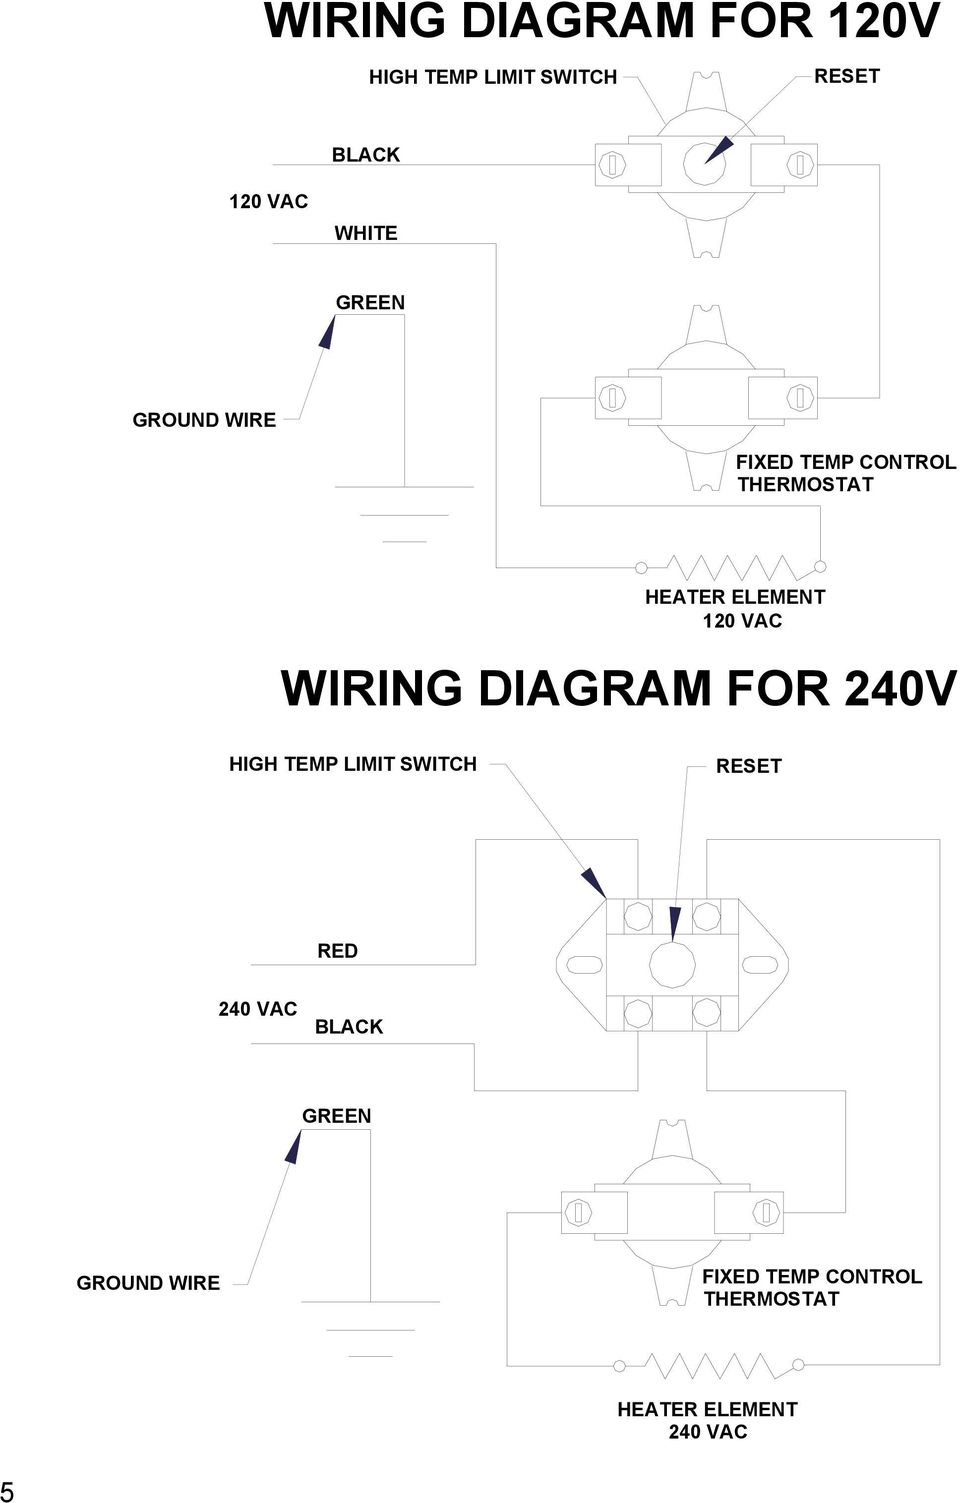 medium resolution of 120 vac wiring diagram for 240v high temp limit switch reset red 240